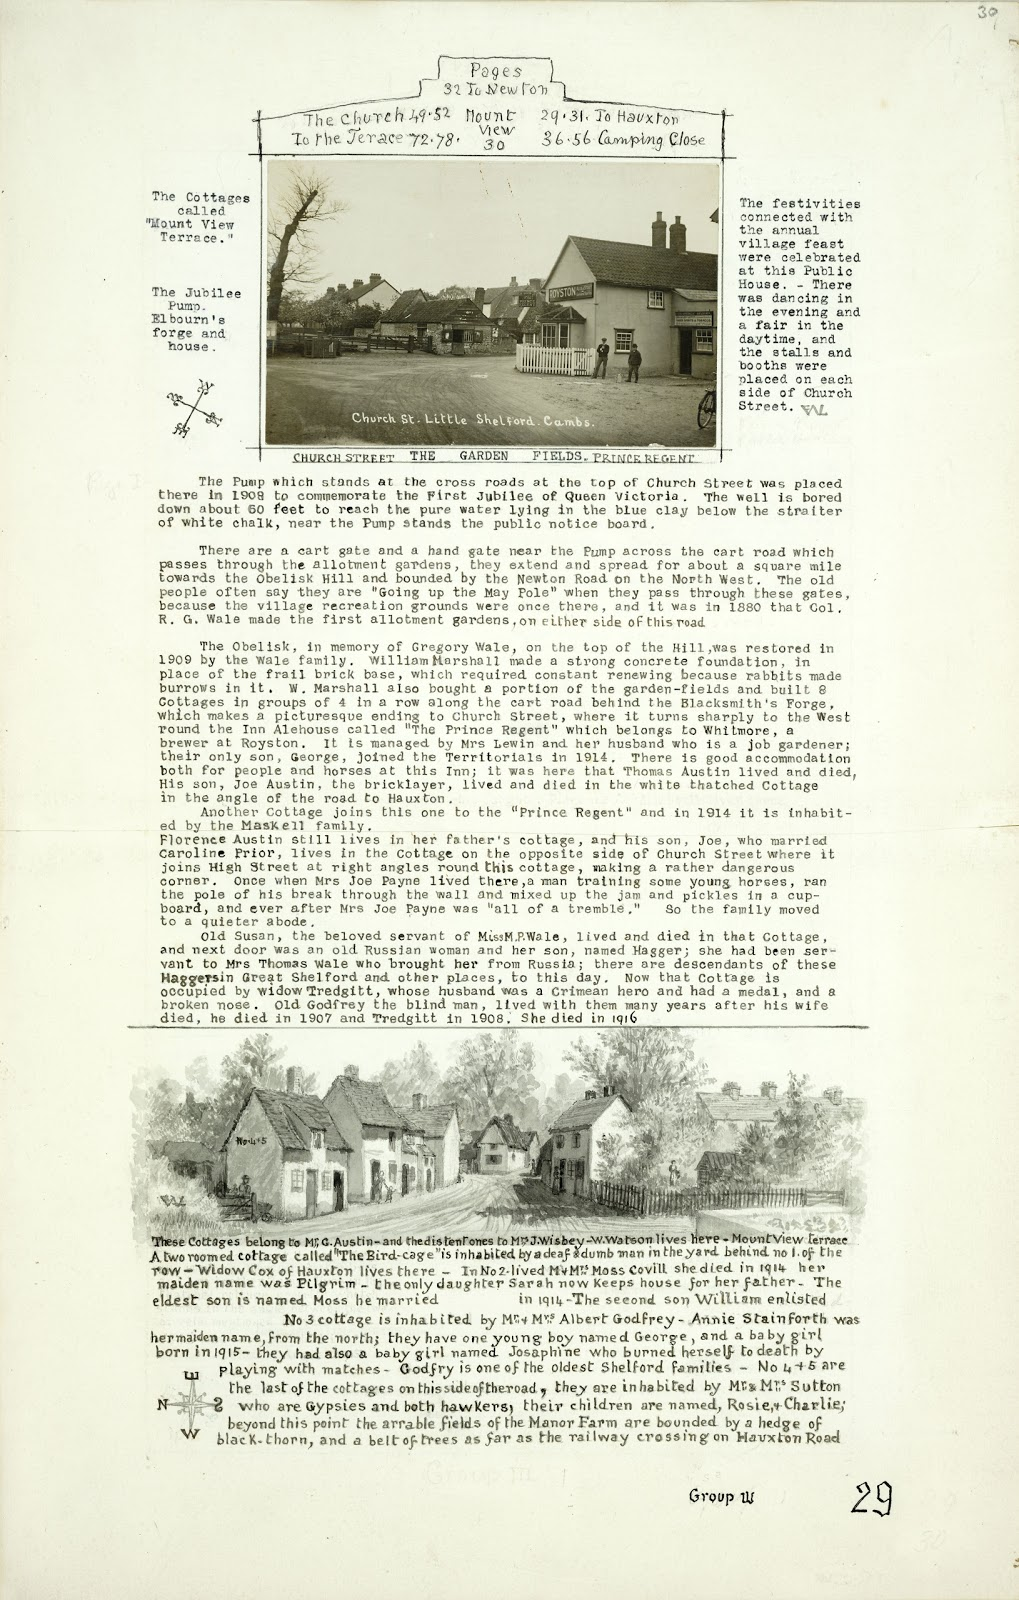 A Record of Shelford Parva by Fanny Wale P29 fo. 30, page 29: A photograph of the Church Street, Little Shelford and the Prince Regent public house is at the top of the page. A description of the photograph follows it. At the bottom of the page is a watercolour of the cottages belonging to Mr. G. Austin and a description of them and their inhabitants underneath. [fo.27 but within mount B]